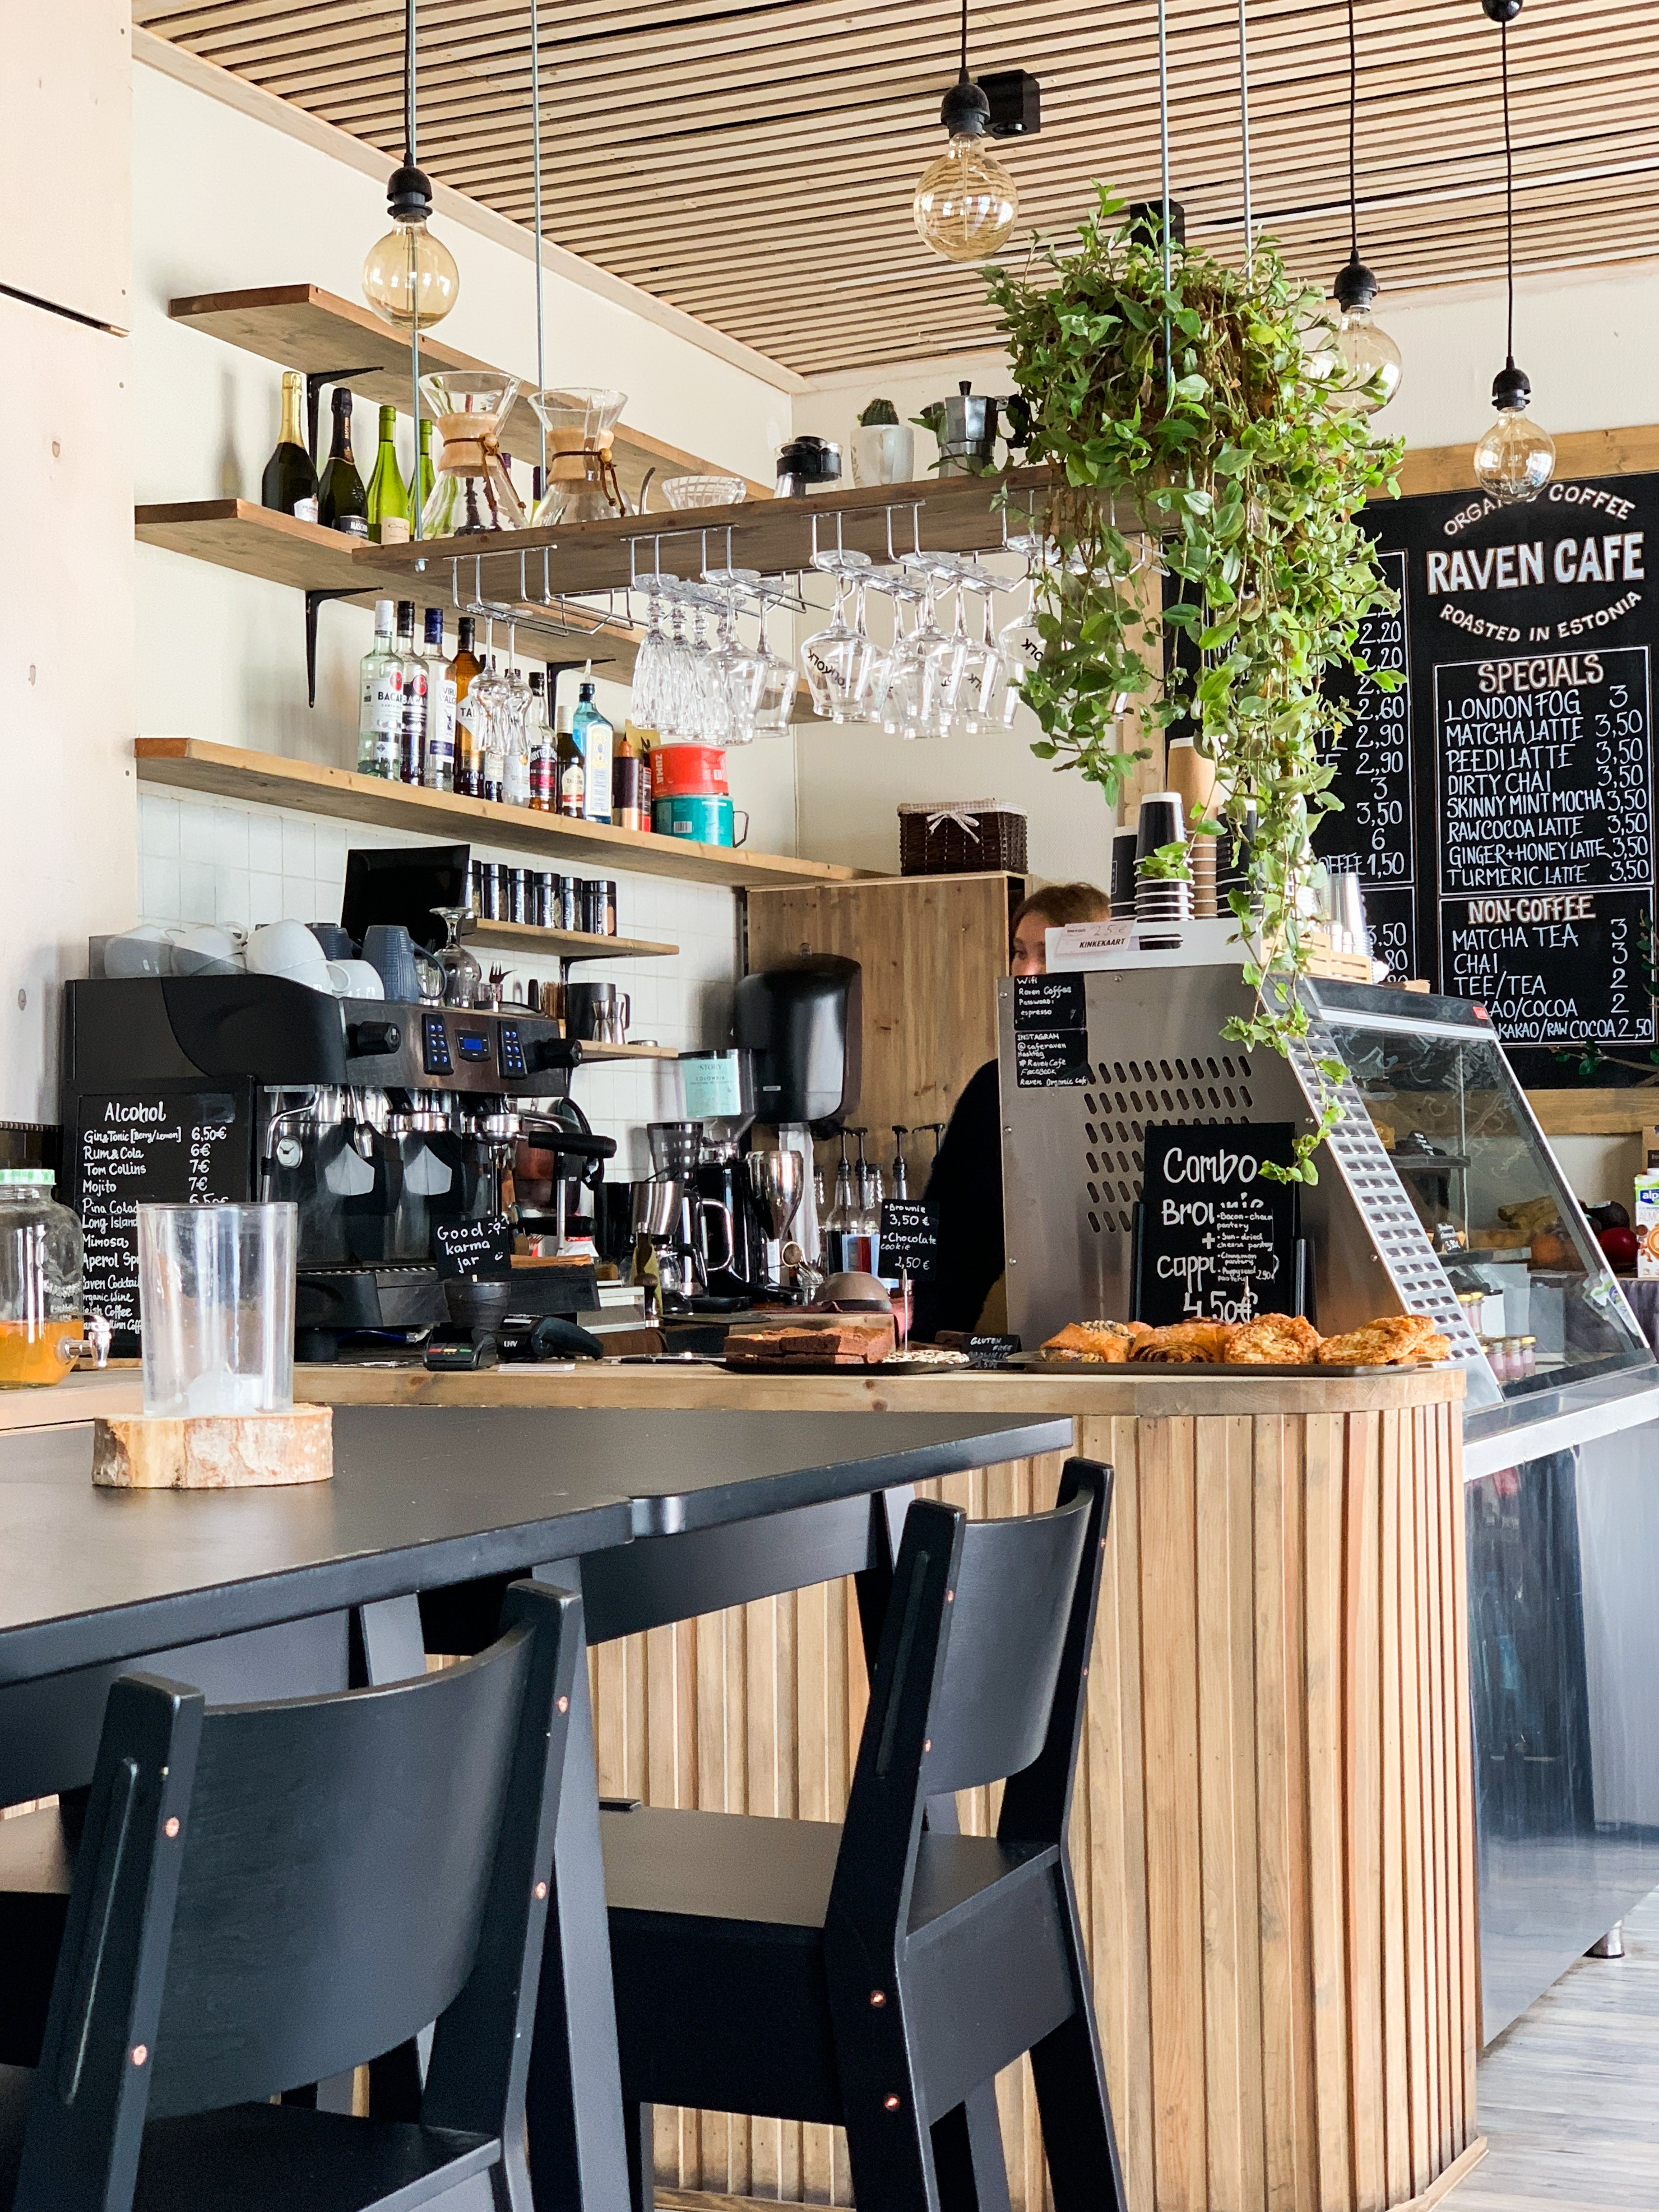 Picture of: Black Wooden Dining Table In A Coffee Shop Free Stock Photo